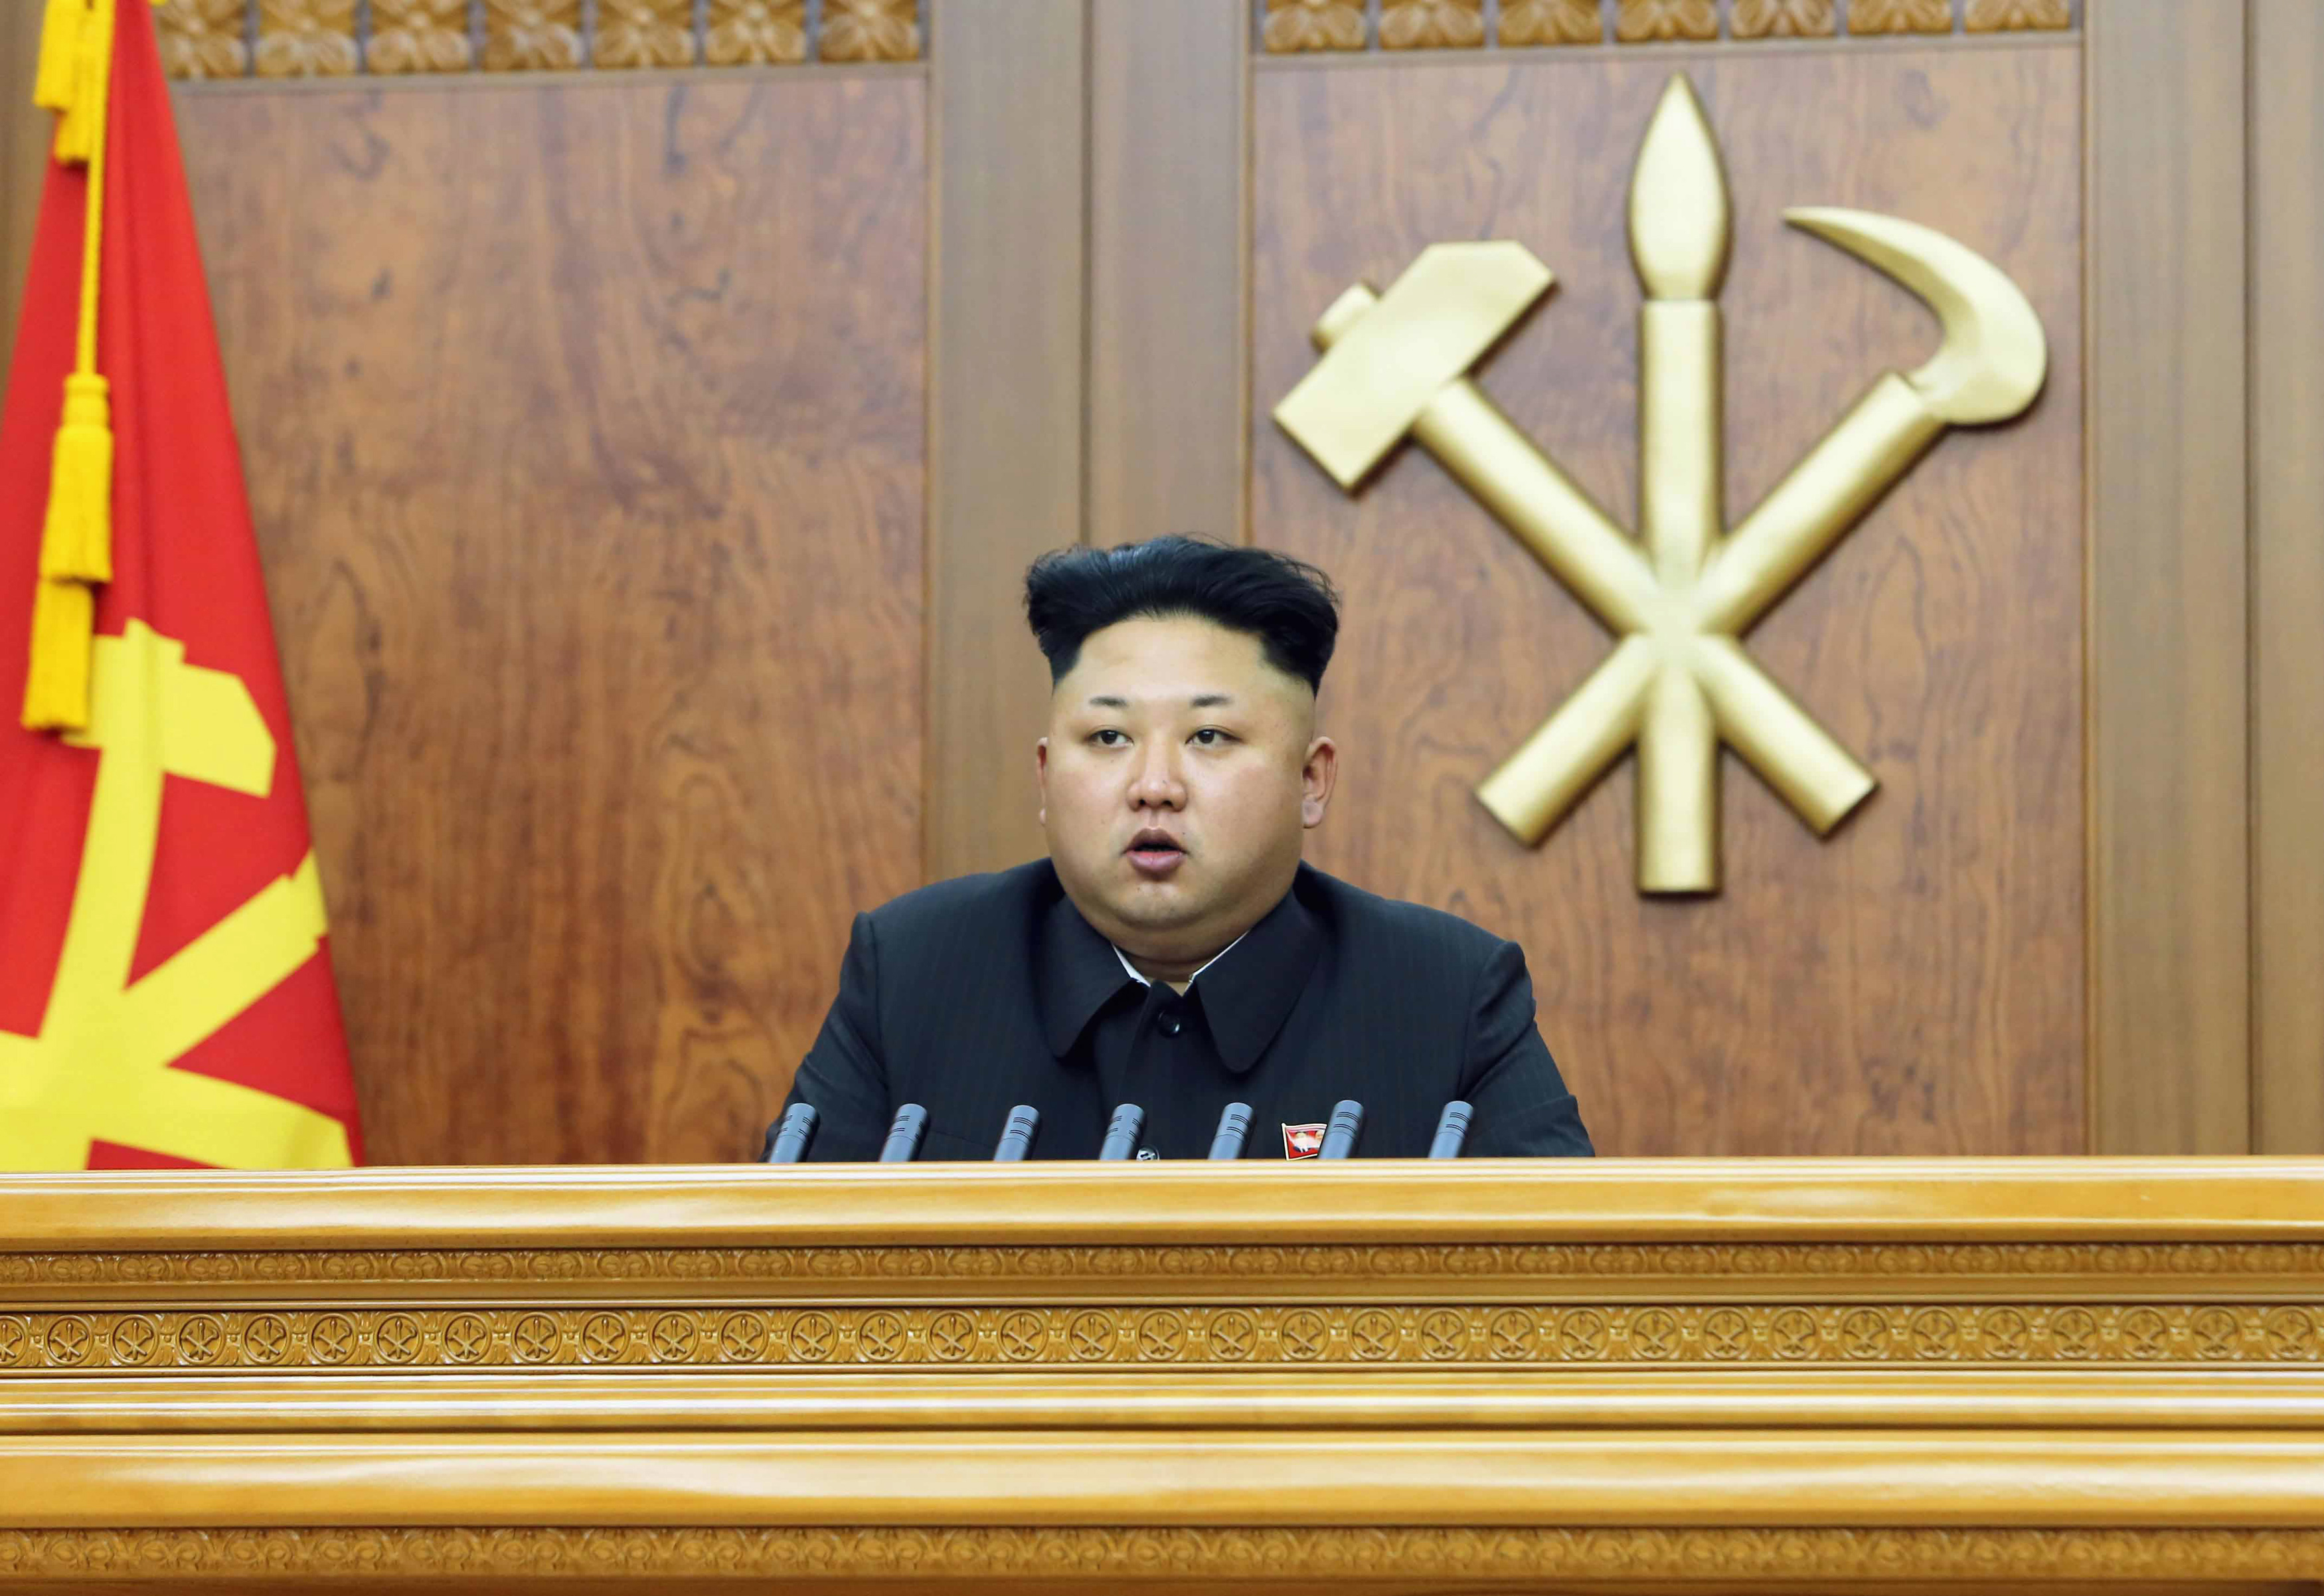 North Korean leader Kim Jong Un delivers a New Year's address in this January 1, 2015 photo released by North Korea's Korean Central News Agency (KCNA) in Pyongyang.